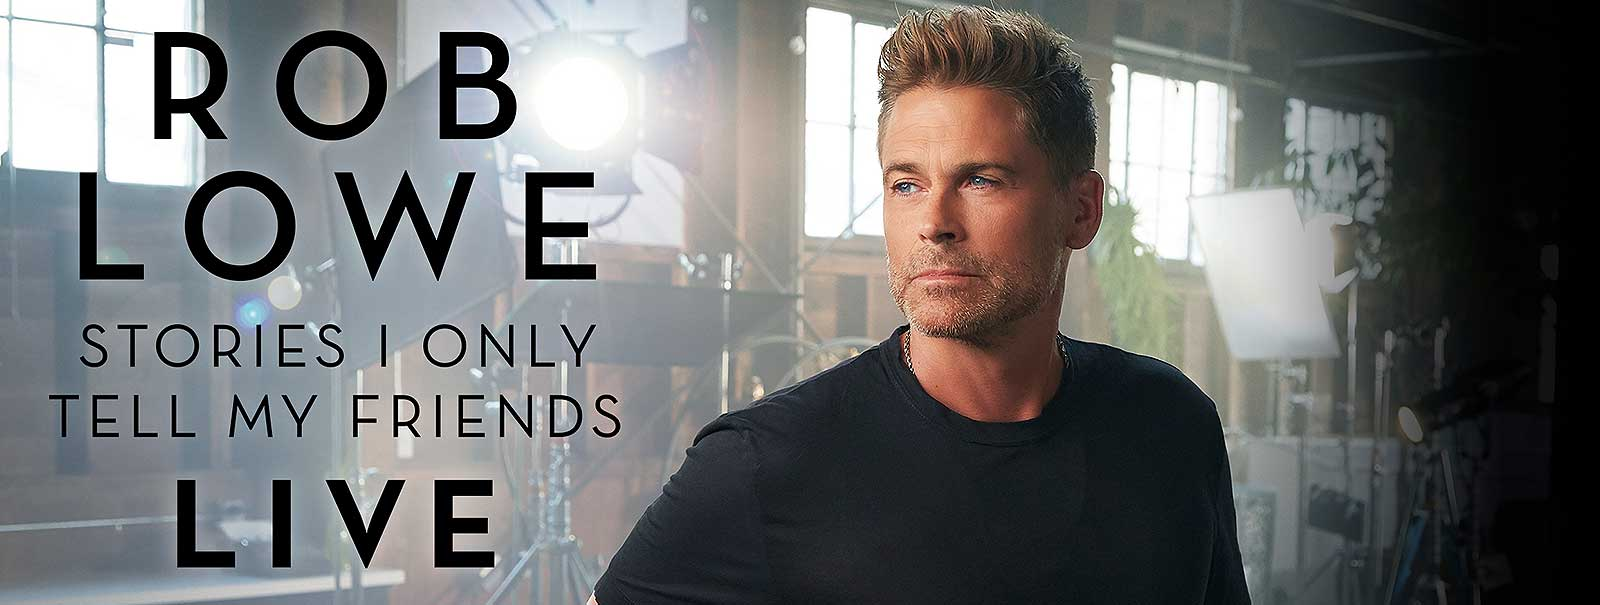 More Info - Rob Lowe Stories I Only Tell My Friends: LIVE!